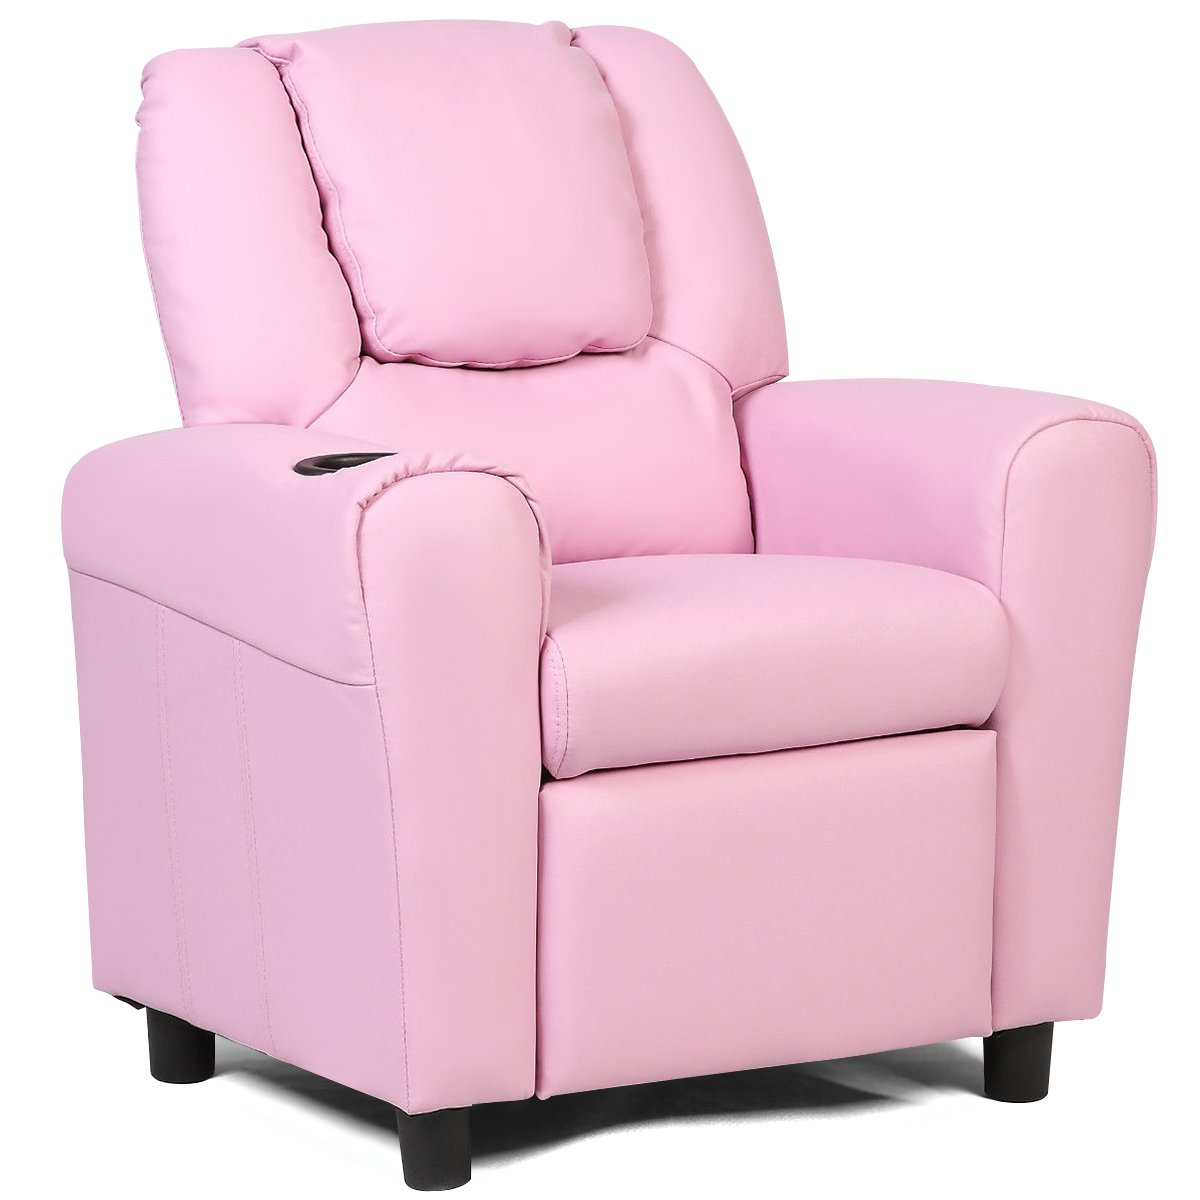 Costzon Contemporary Kids Recliner, PU Leather Lounge Furniture for Boys & Girls W/Cup Holder, Children Sofa Chair (Pink) by Costzon